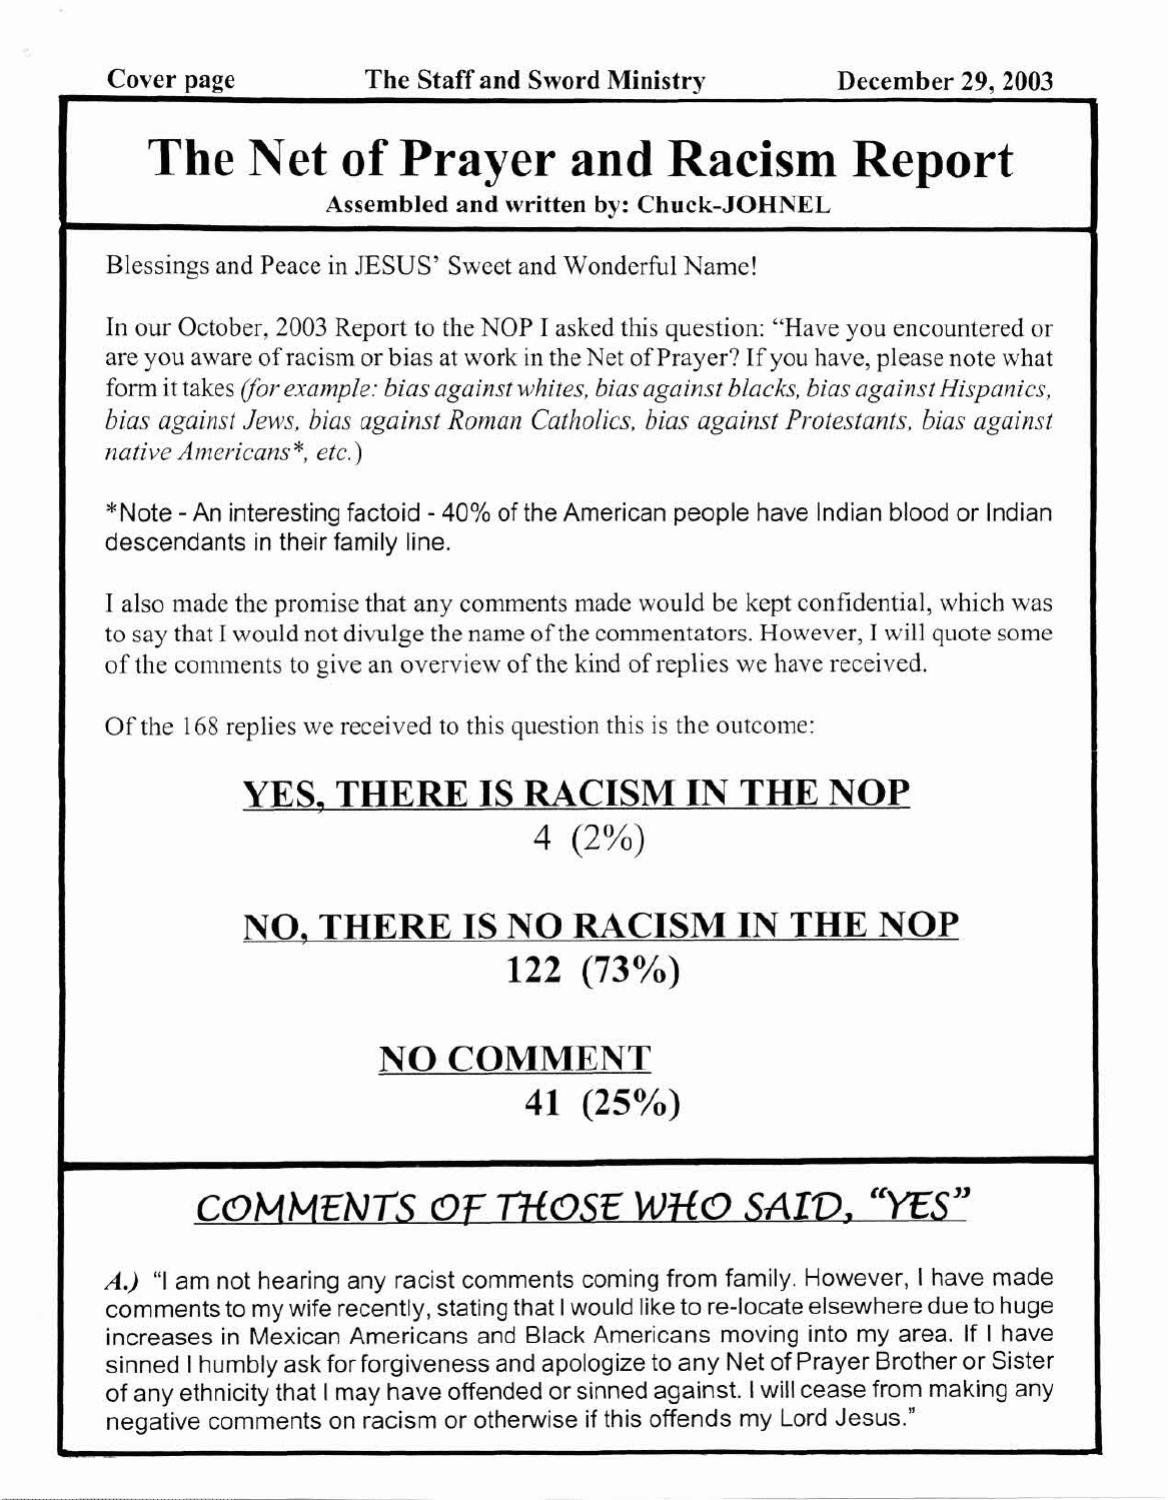 Dec 29th, 2003: : The Net of Prayer and Racism Report by